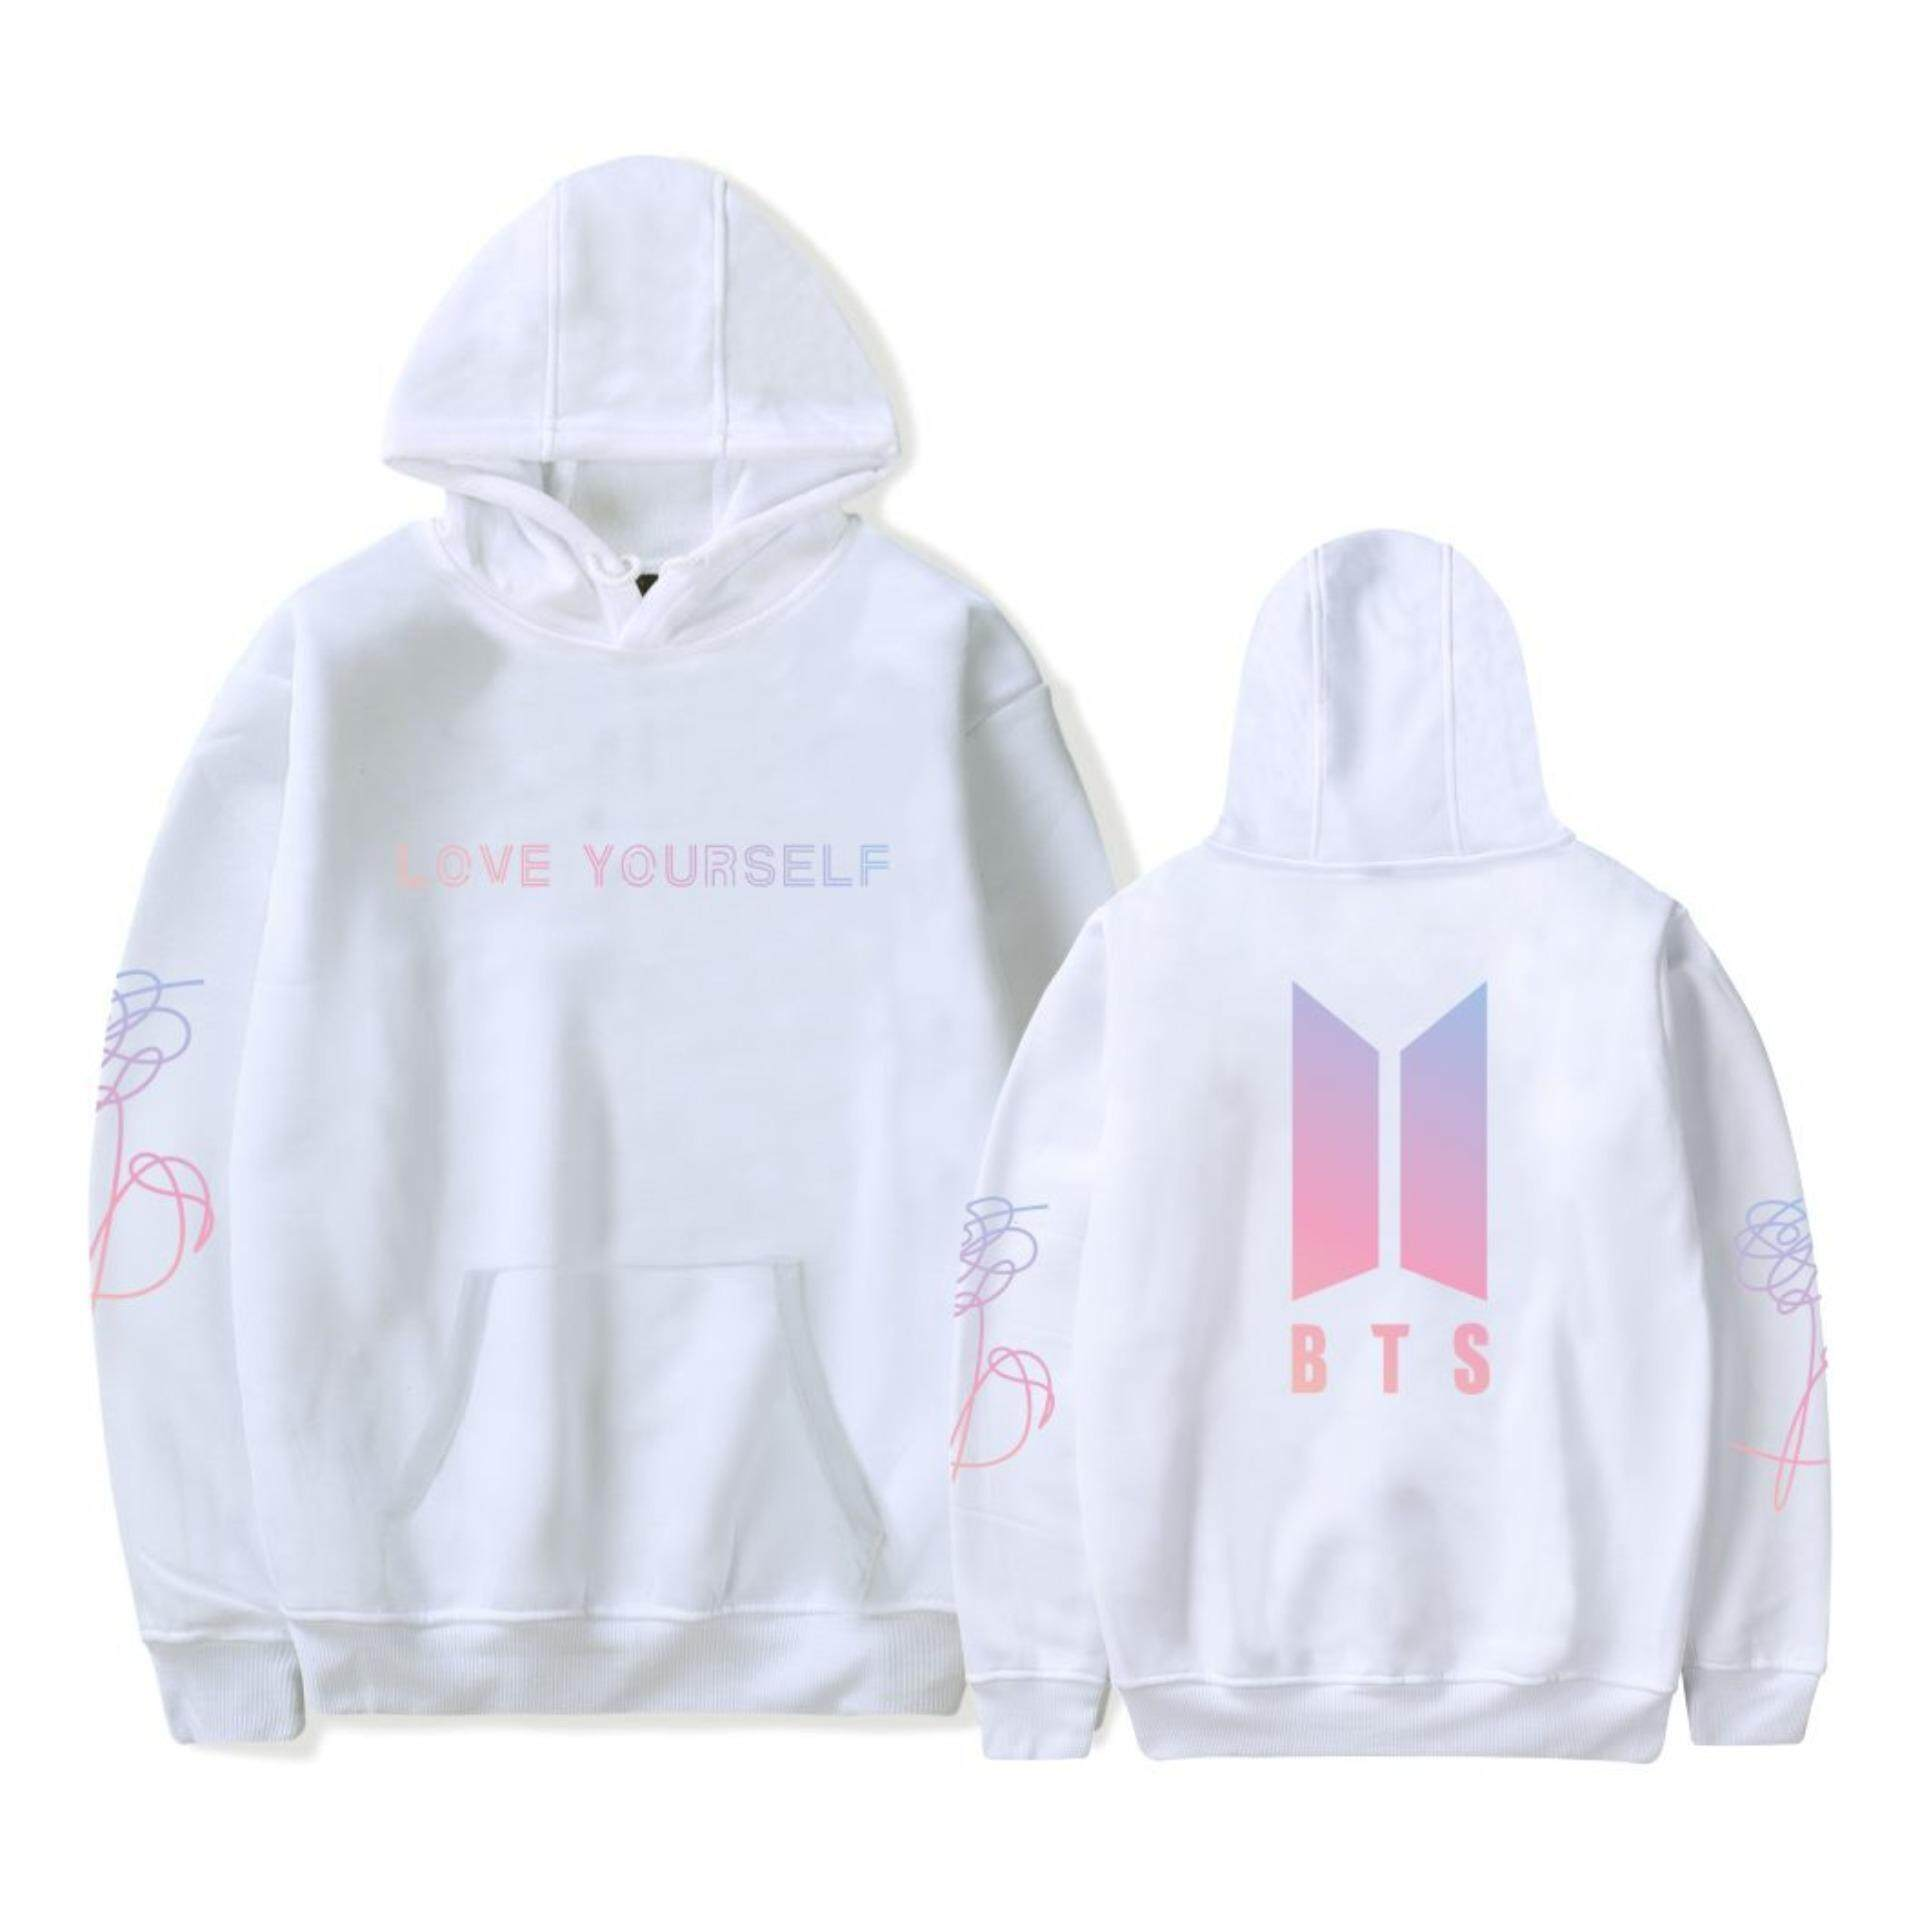 Philippines. BTS HOODIES Korea BTS Hoodie Men Women Love Yourself Blouse  Ready Stock Coat 2a0c3ad80